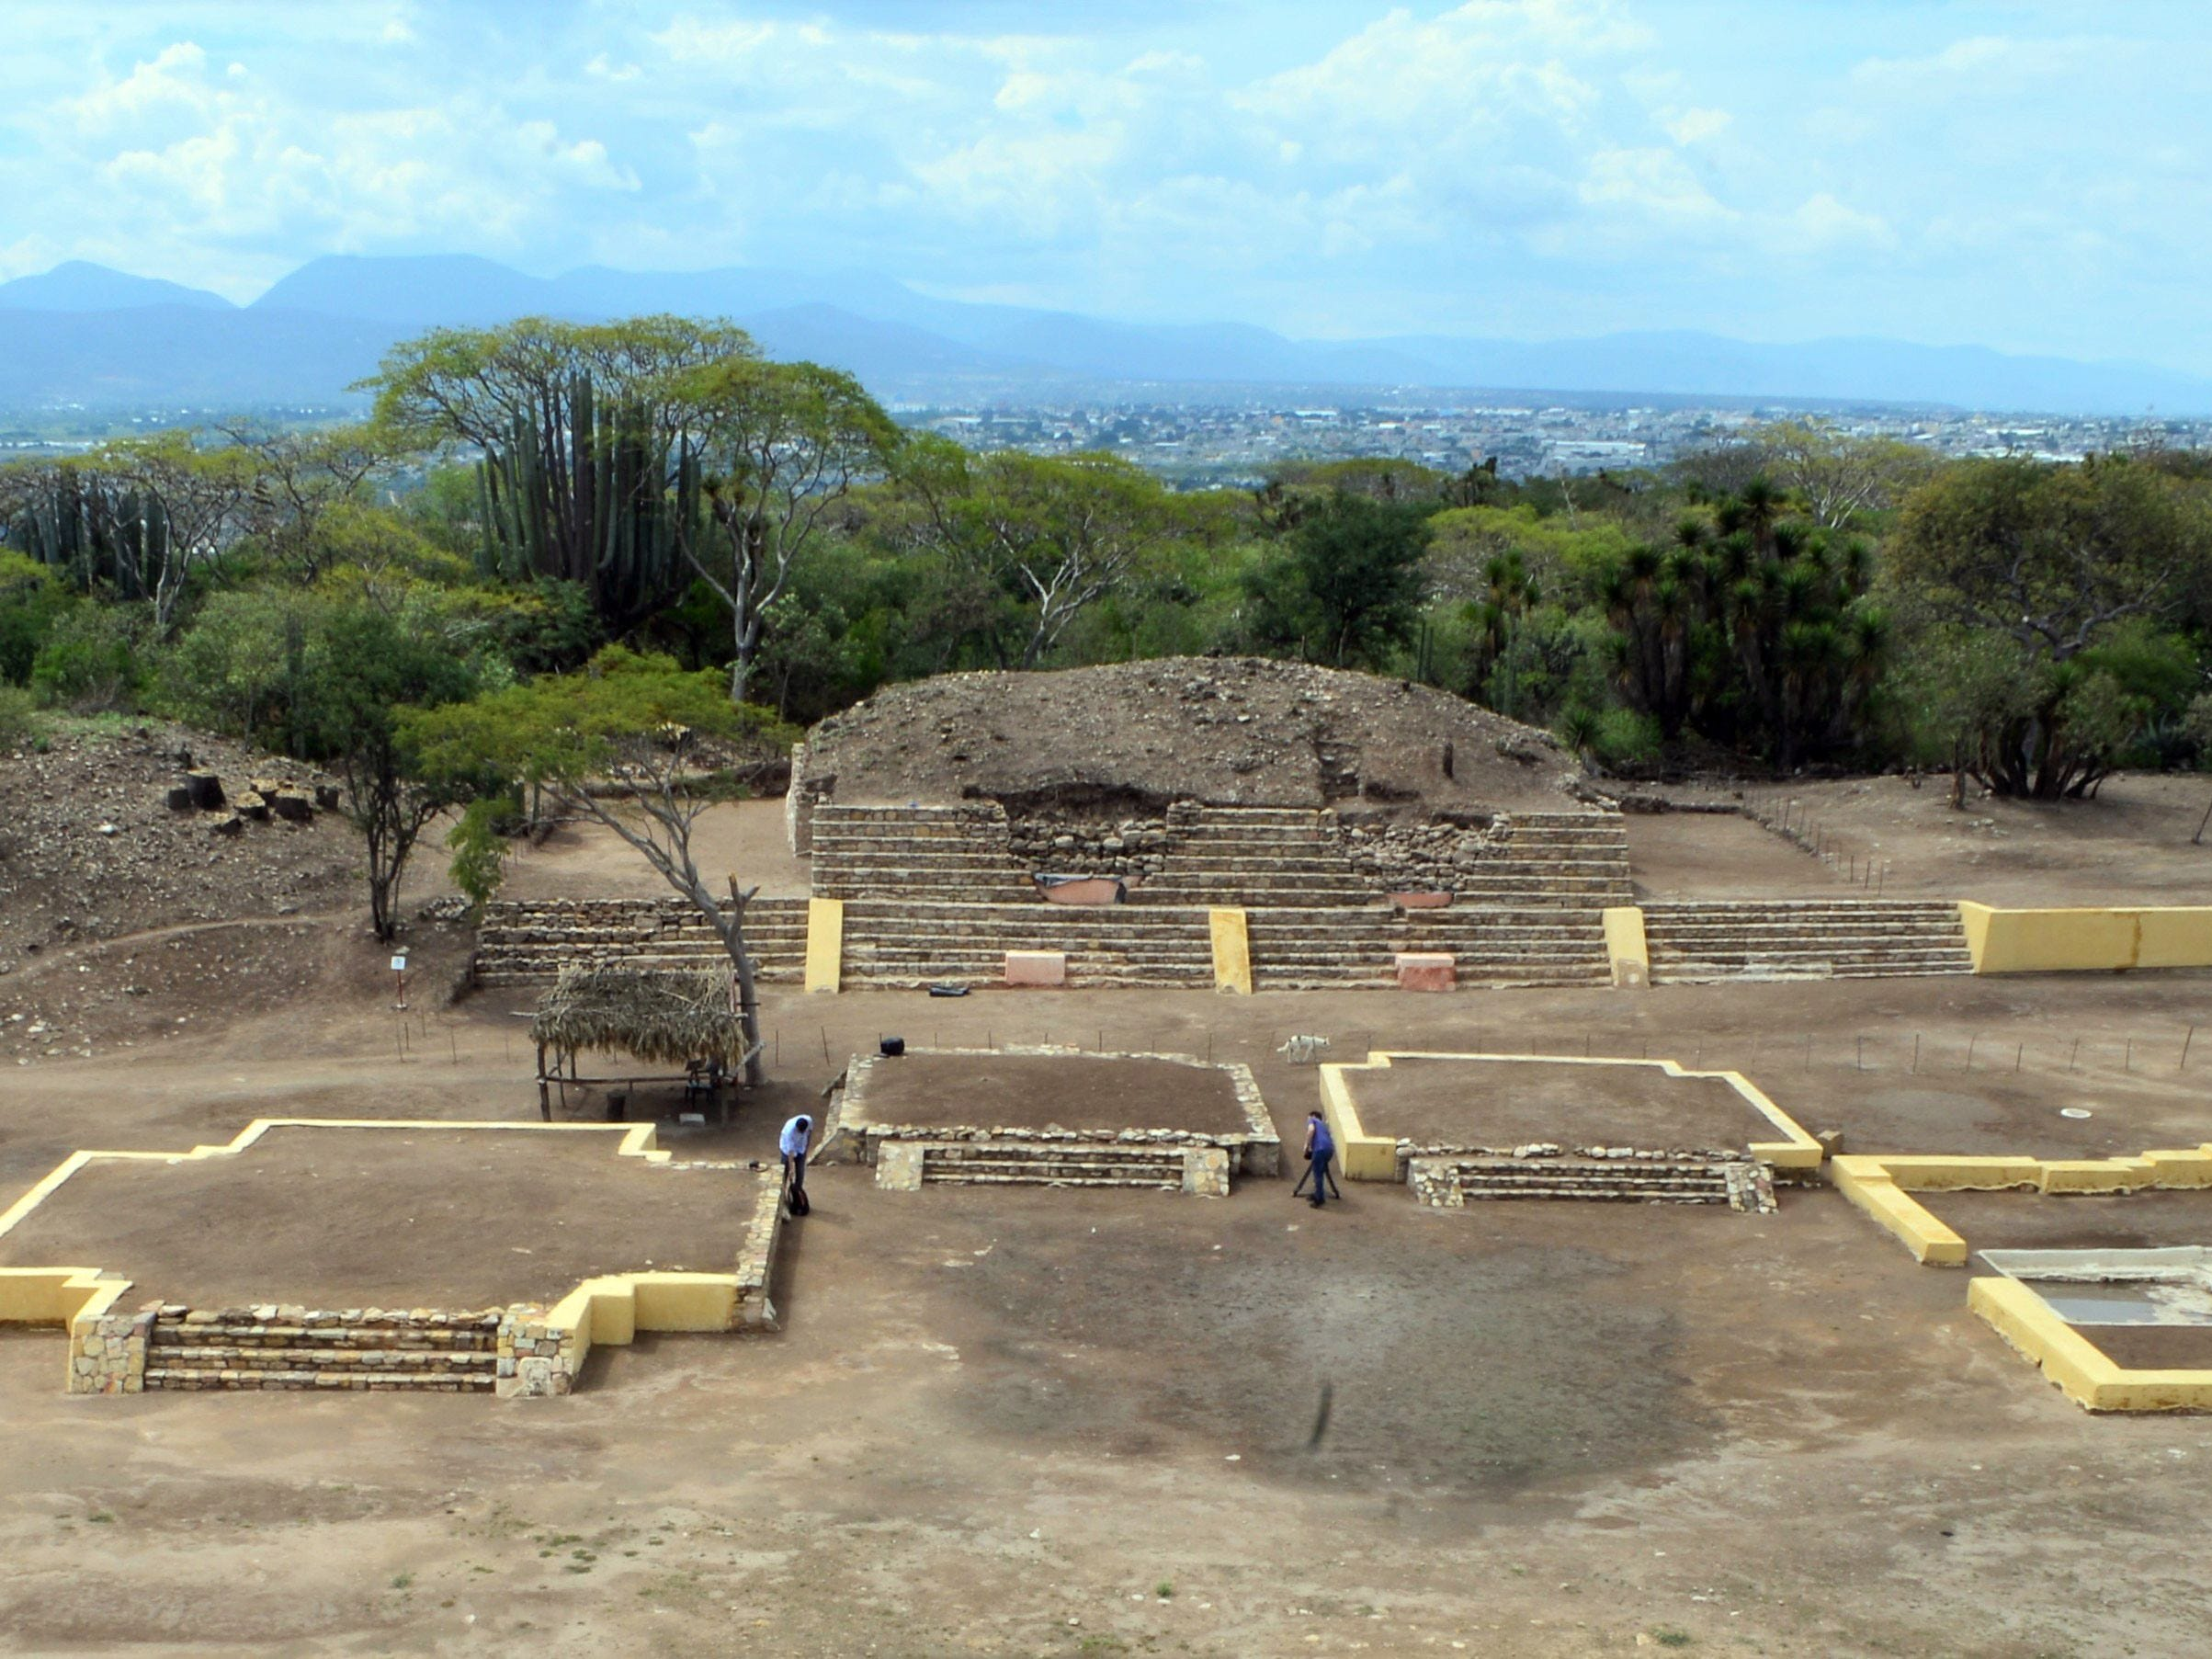 Handout picture released by Mexico's National Institute of Anthropology and History (INAH) taken on October 12, 2018 showing the first temple recently discovered of pre-Hispanic fertility god Xipe Totec (The Flayed Lord), in the archaeological site of Ndachjian-Tehuacan, in the Mexican state of Puebla.